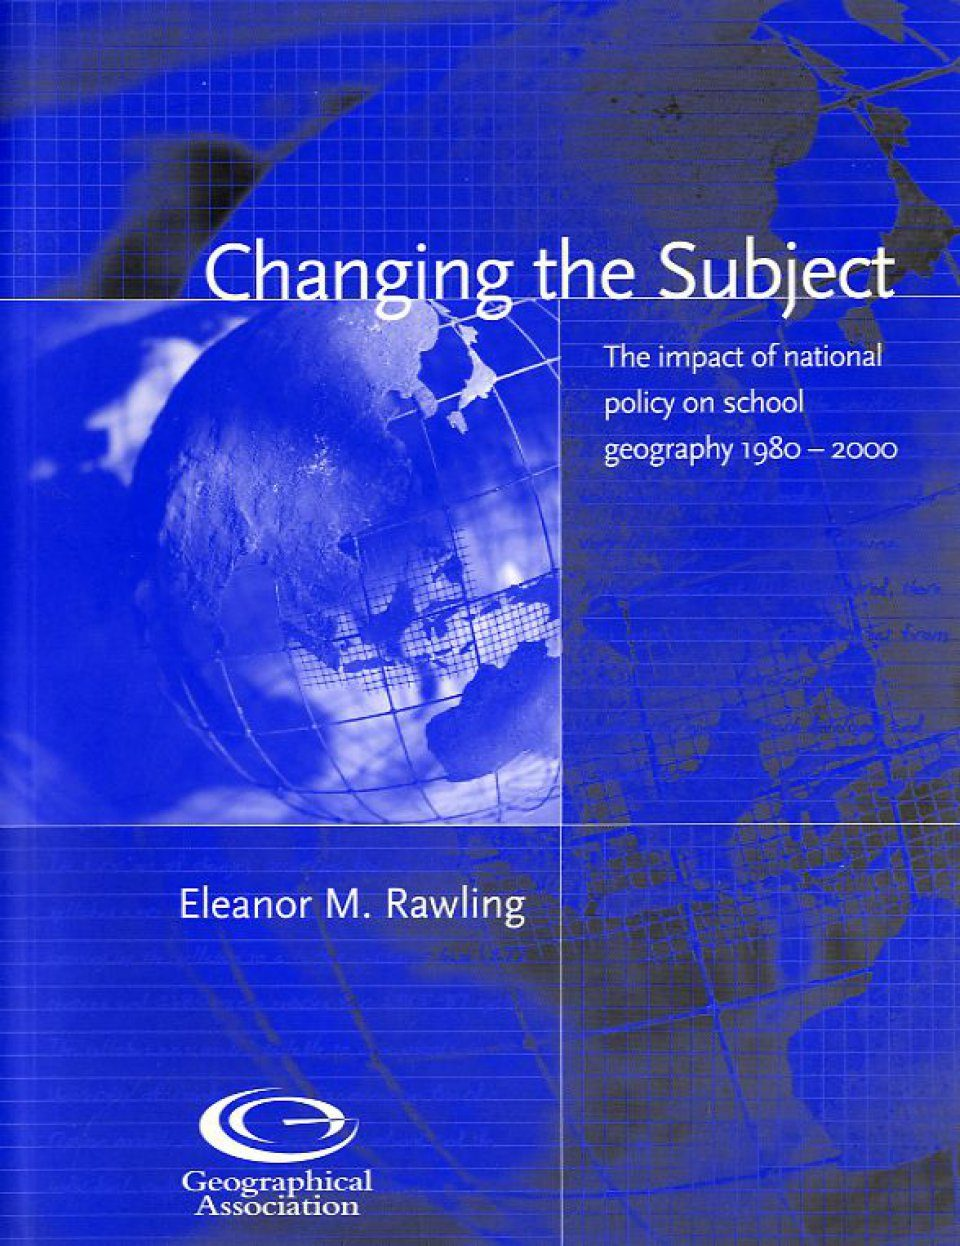 Changing the Subject: The Impact of National Policy on School Geography 1980-2000